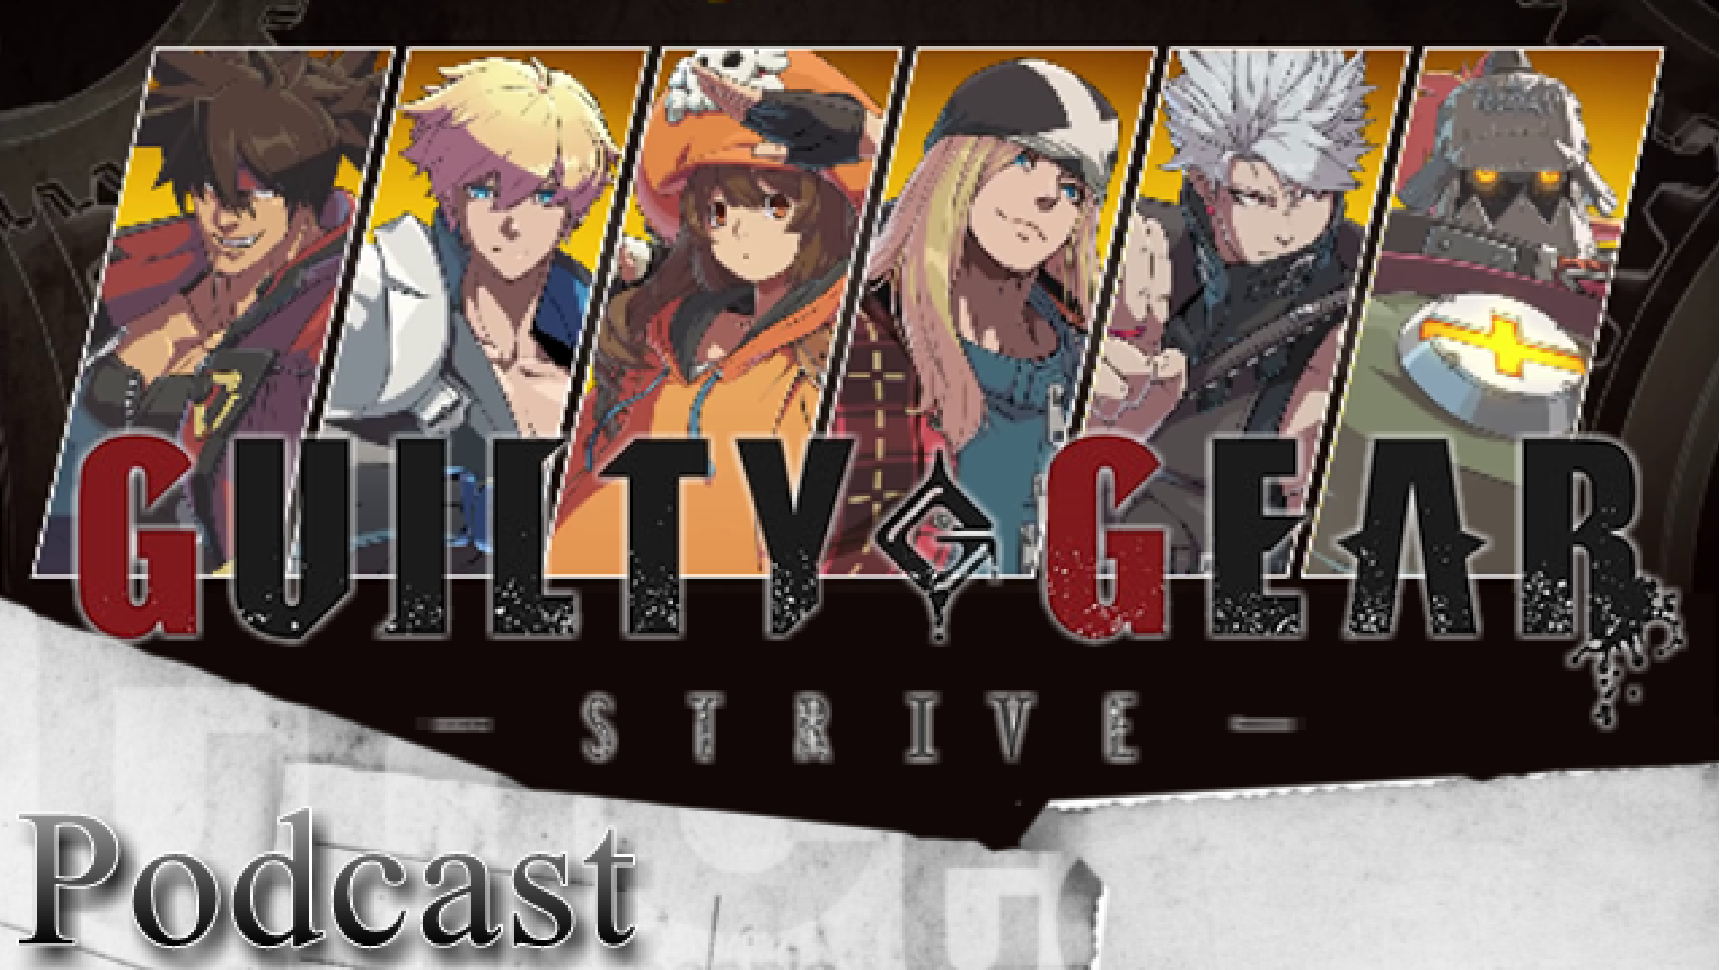 FGCZ podcast – Guilty Gear StrIVe (prk` & Pida)